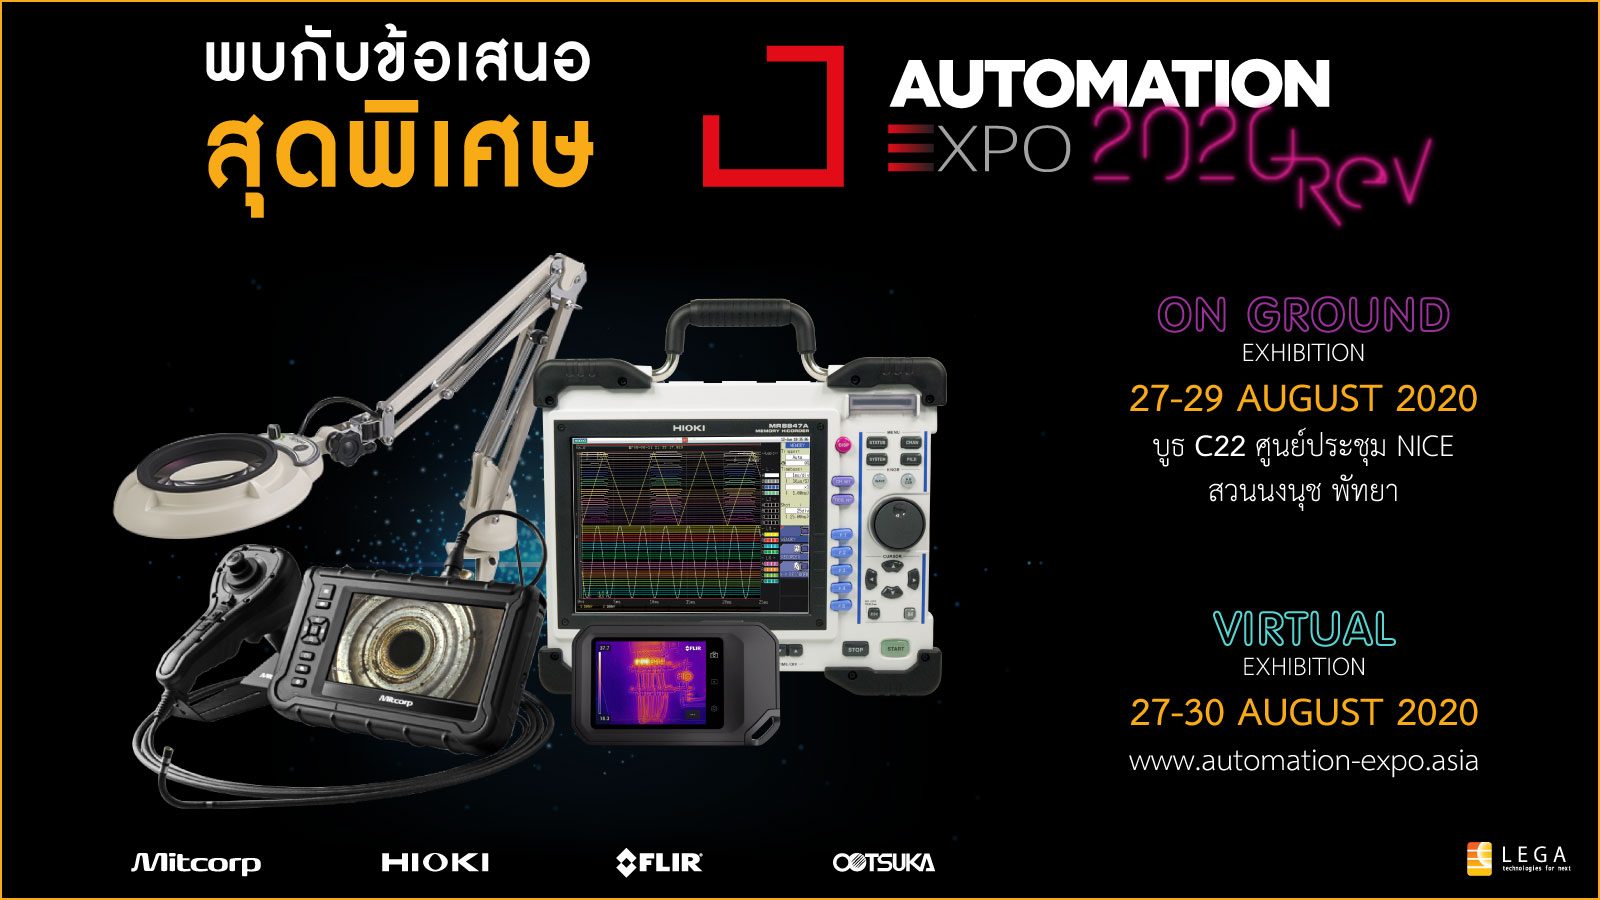 AUTOMATION EXPO 2020